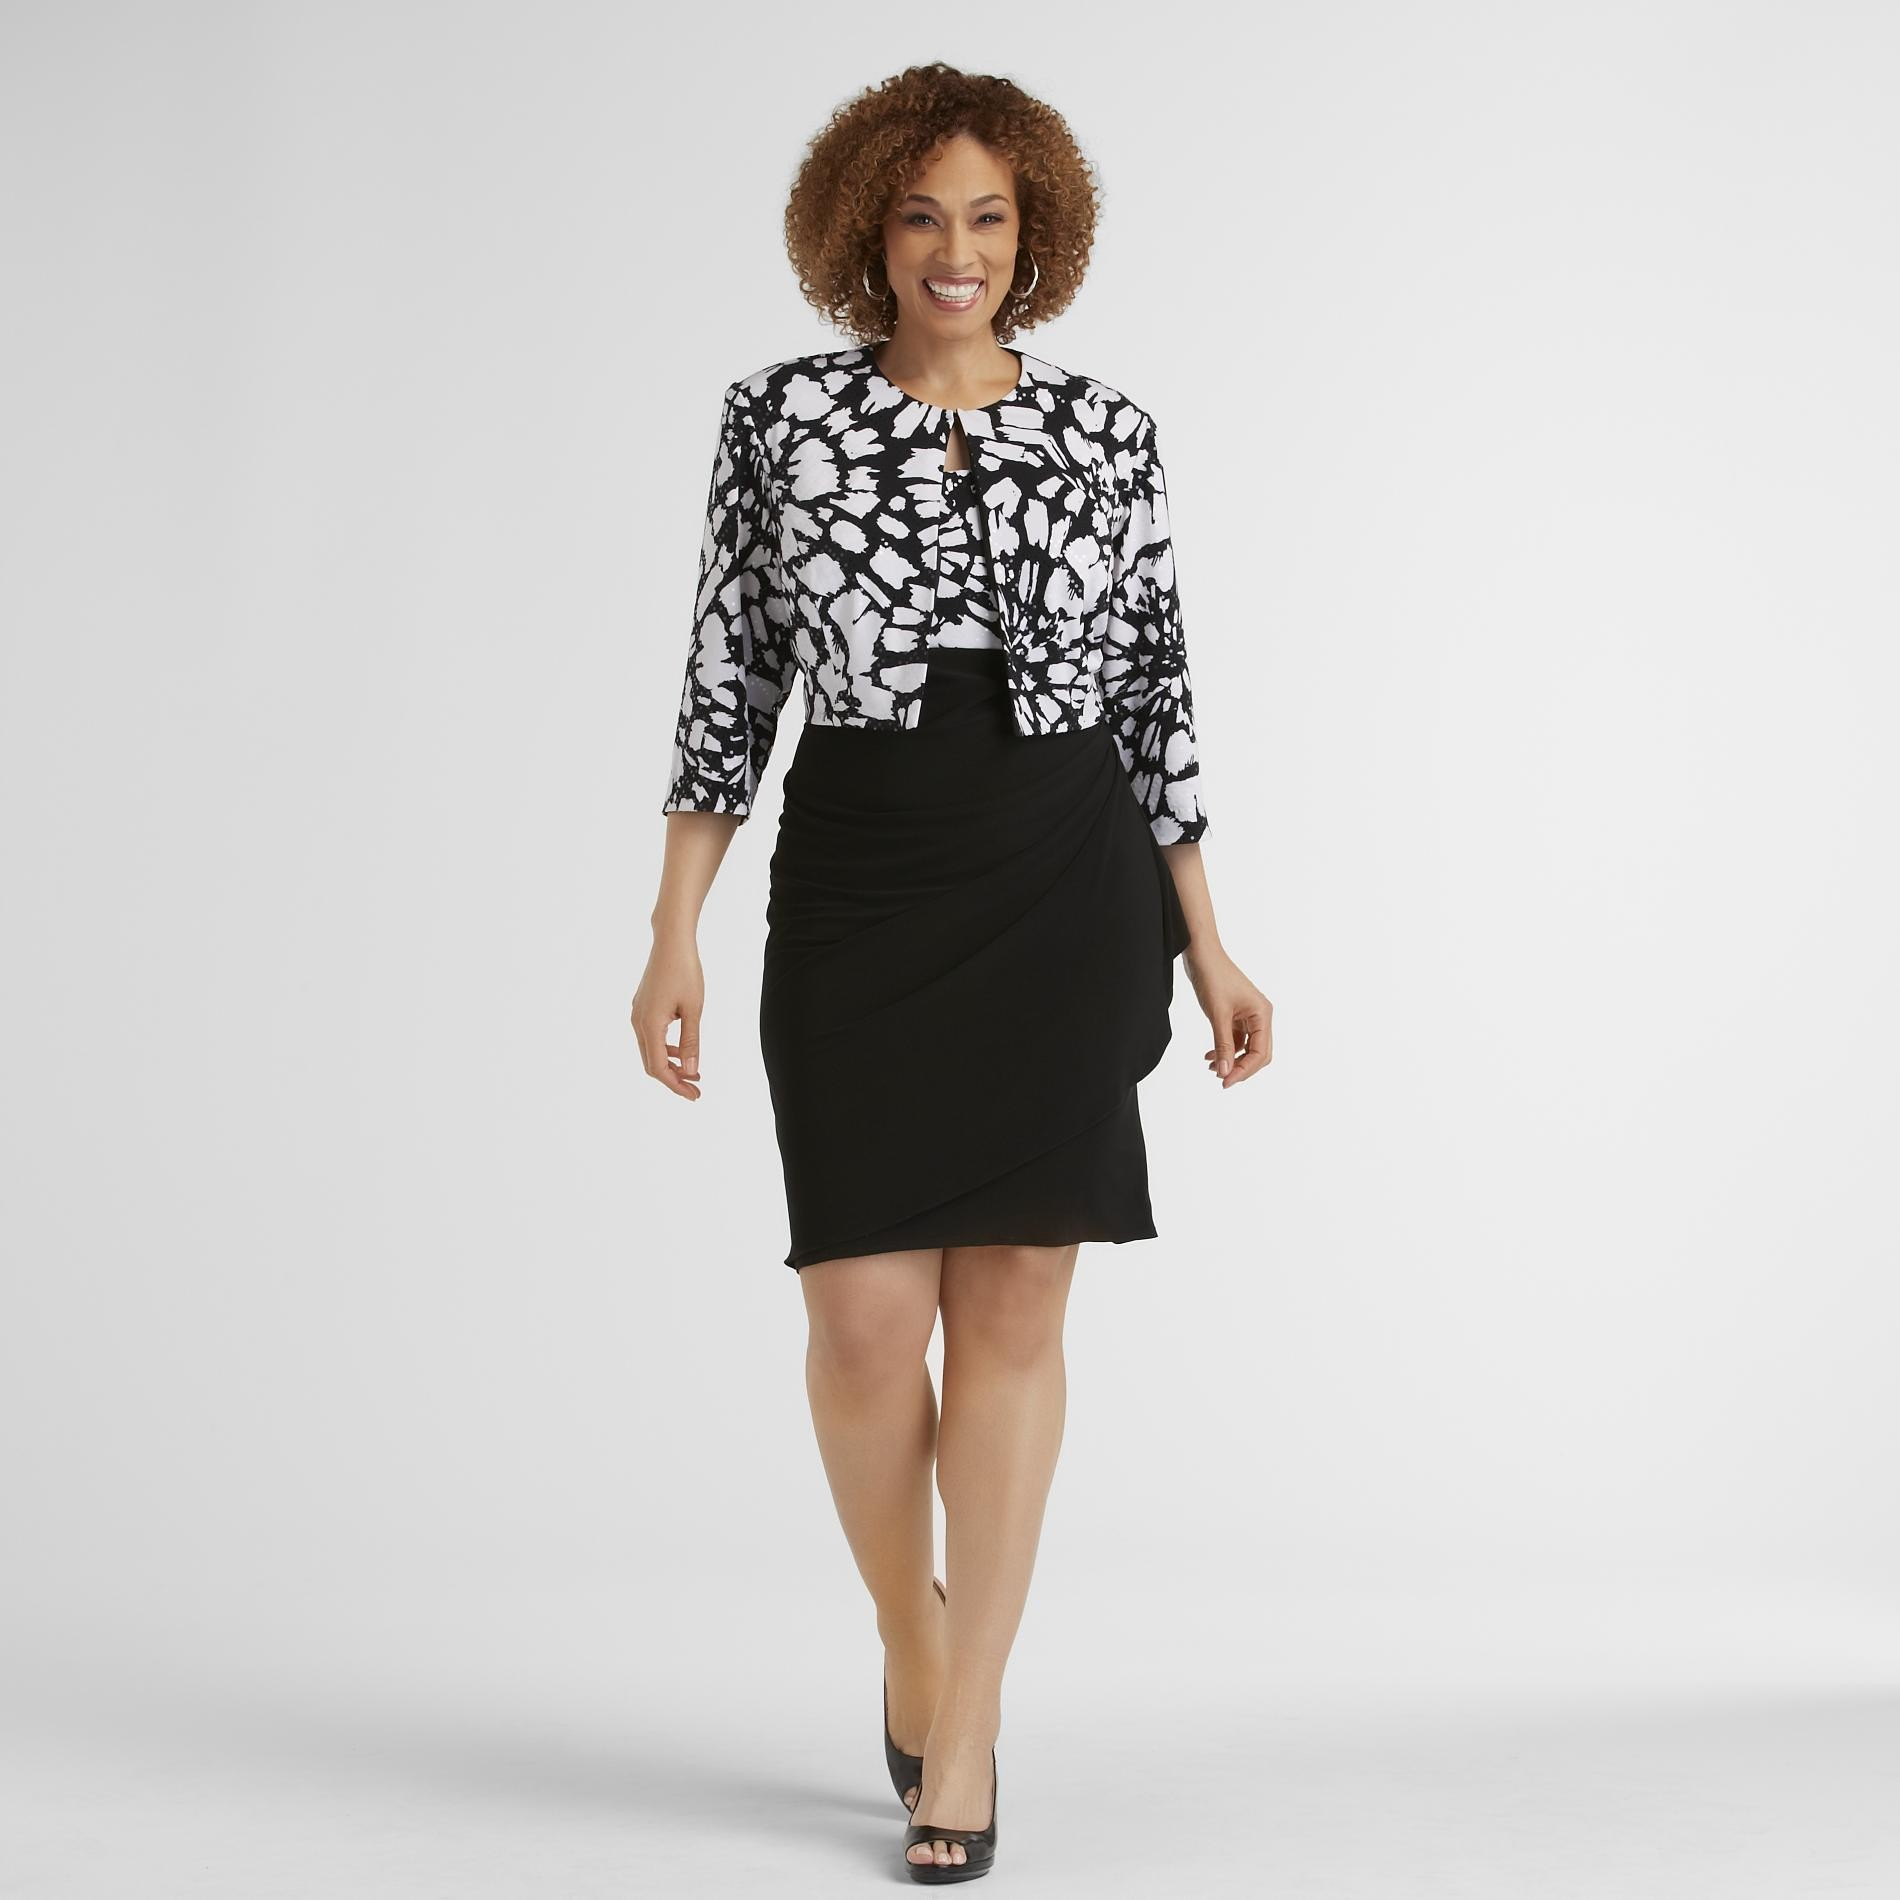 JBS Women's Plus Dress & Jacket - Floral at Sears.com